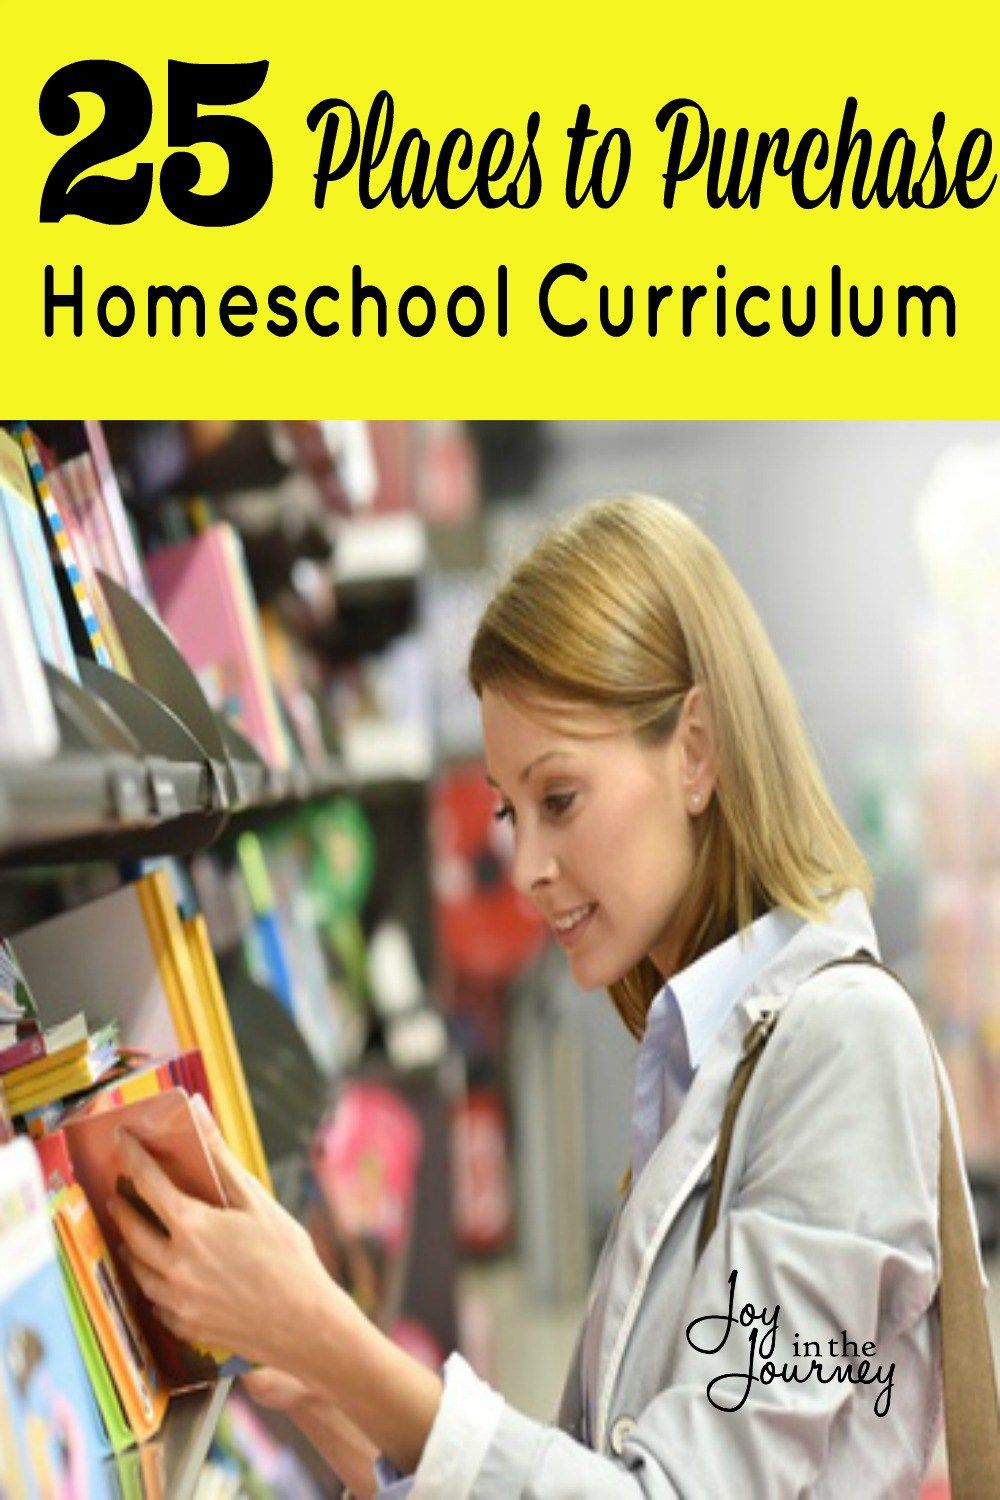 25 Places to Purchase Homeschool Curriculum Homeschool